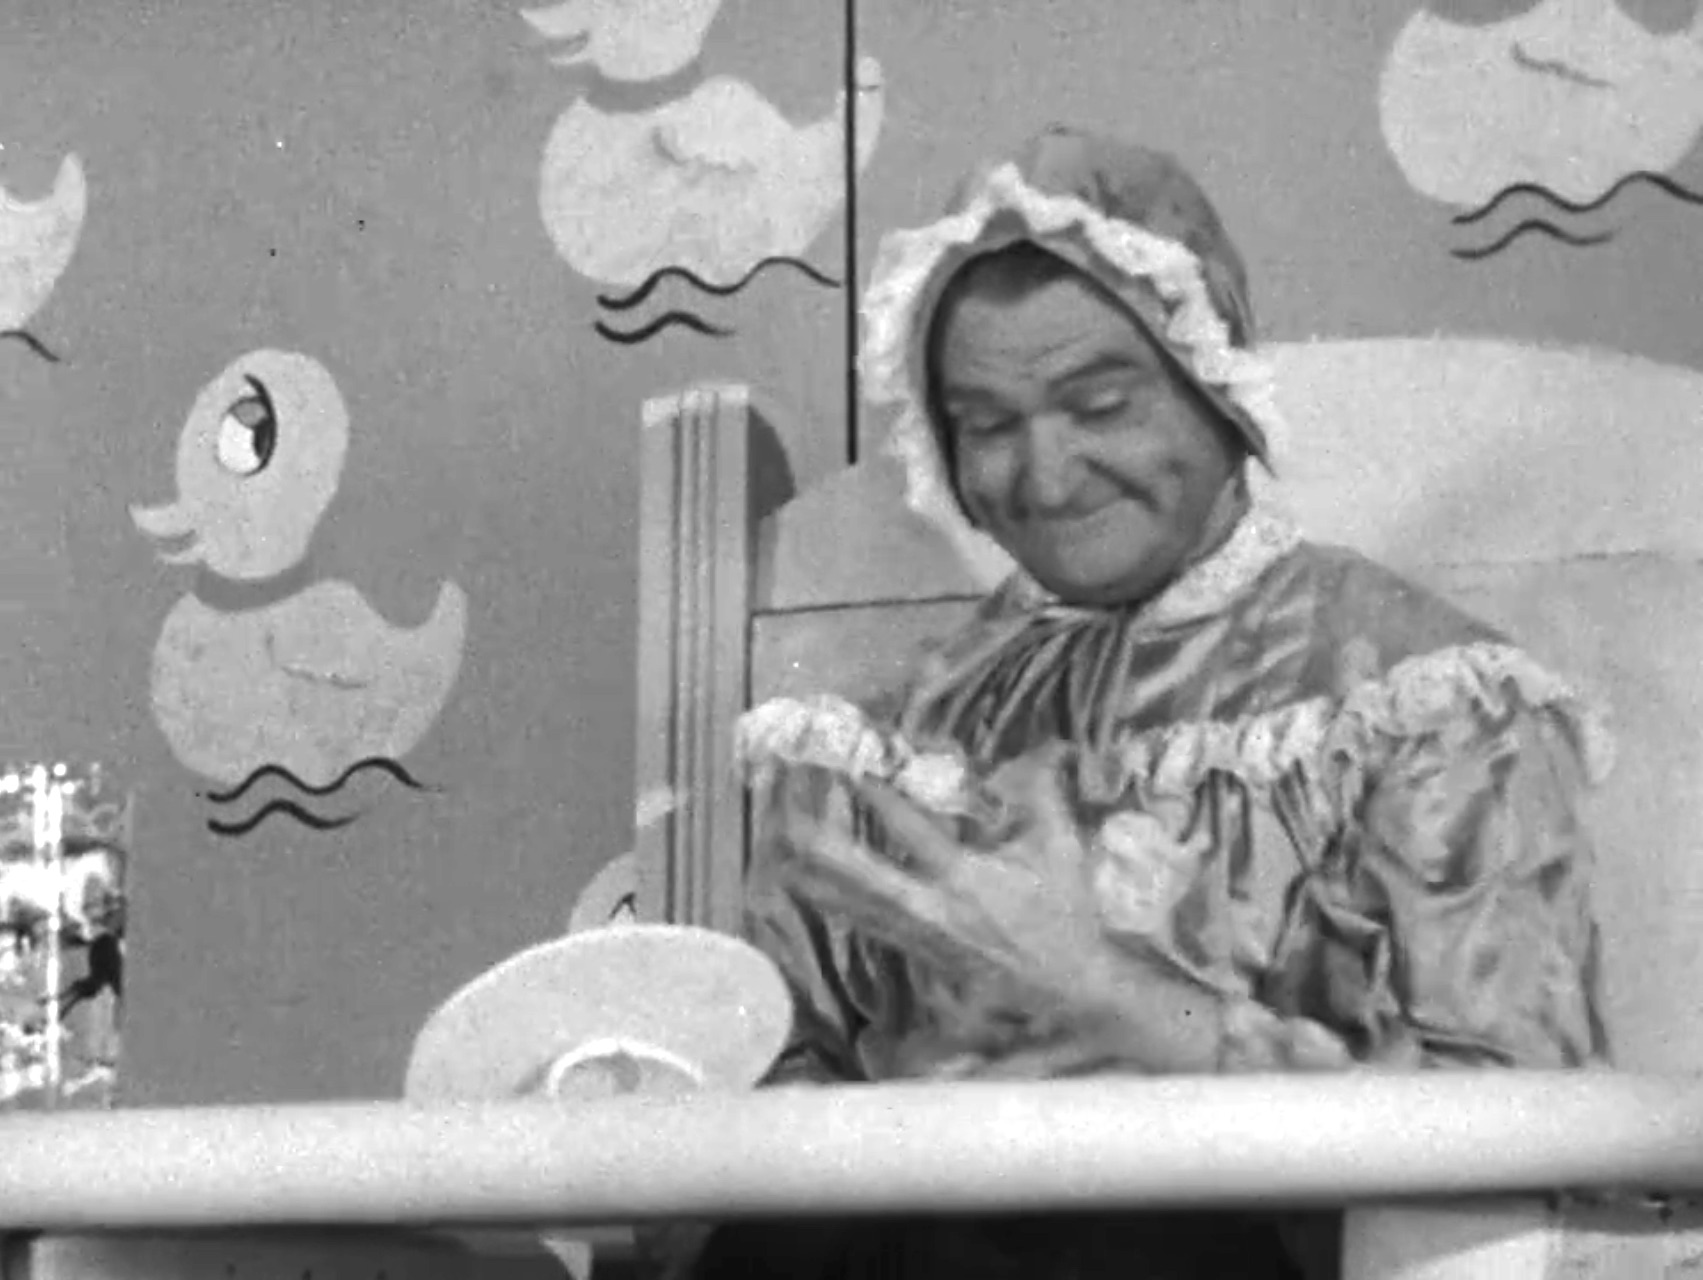 Baby's First Birthdaay - Red Skelton as a baby experiencing his first birthday